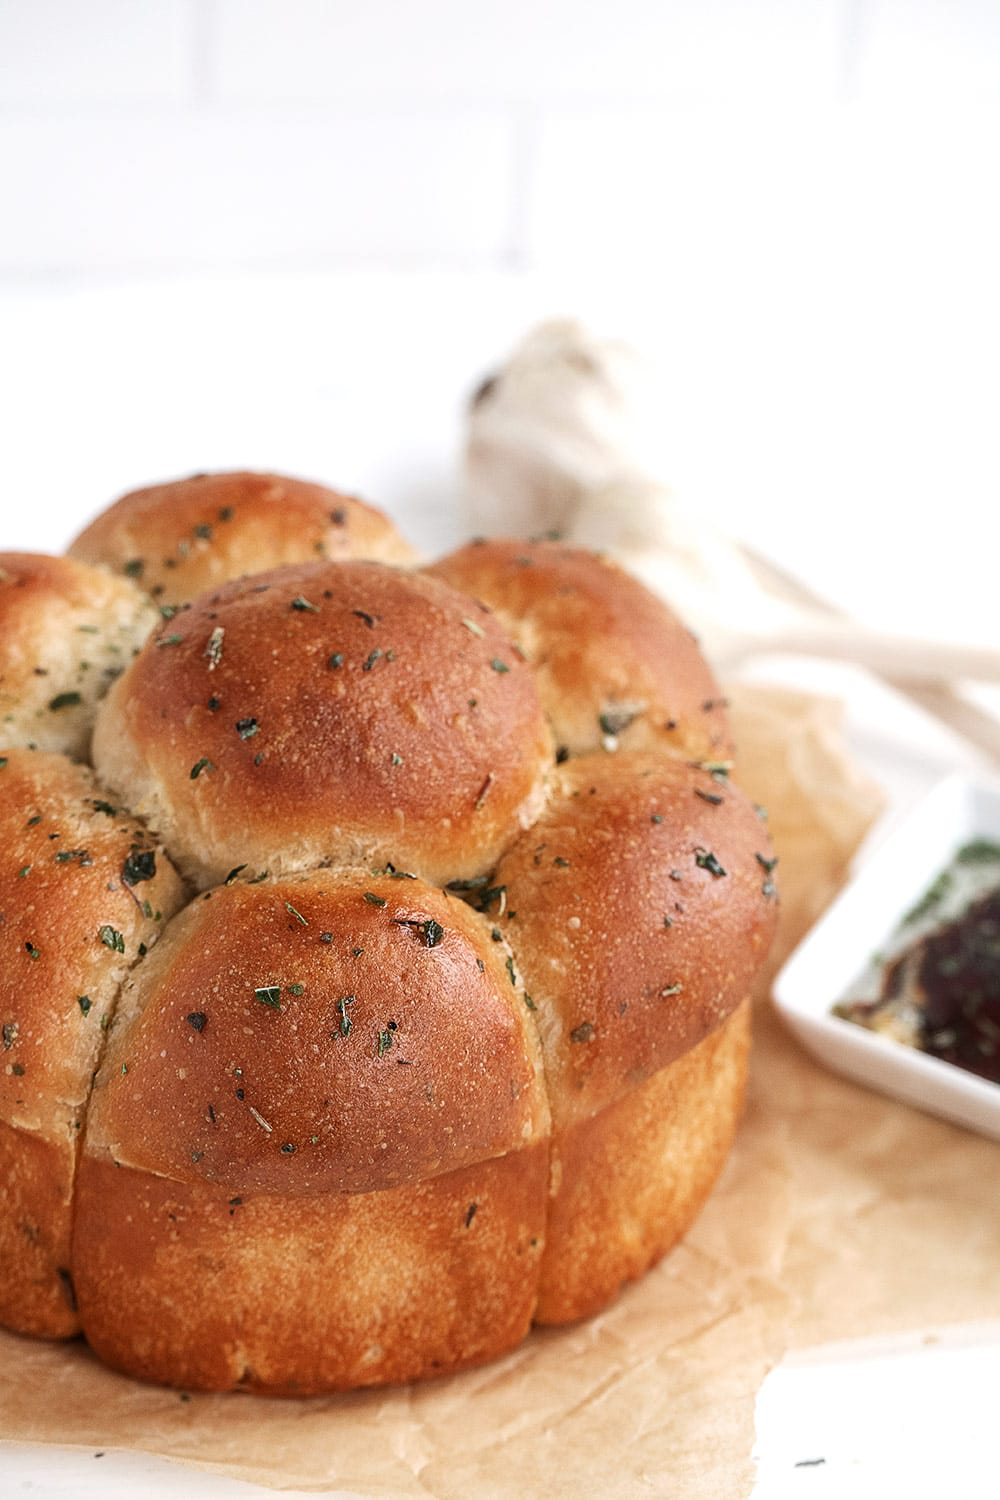 herb and garlic pull apart rolls on parchment paper